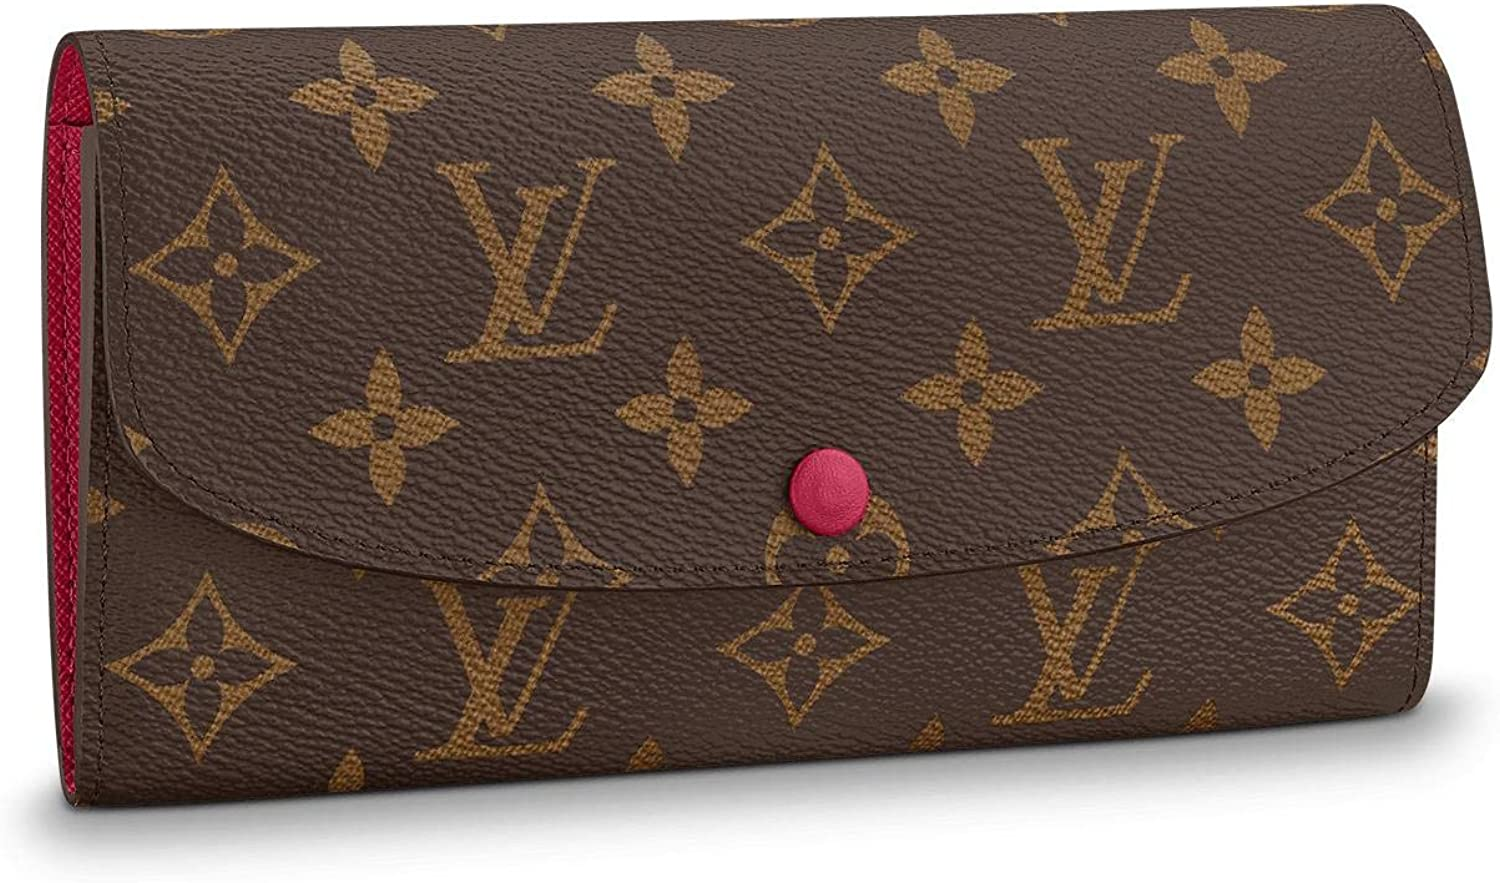 Louis Vuitton Emilie Wallet Monogram Canvas